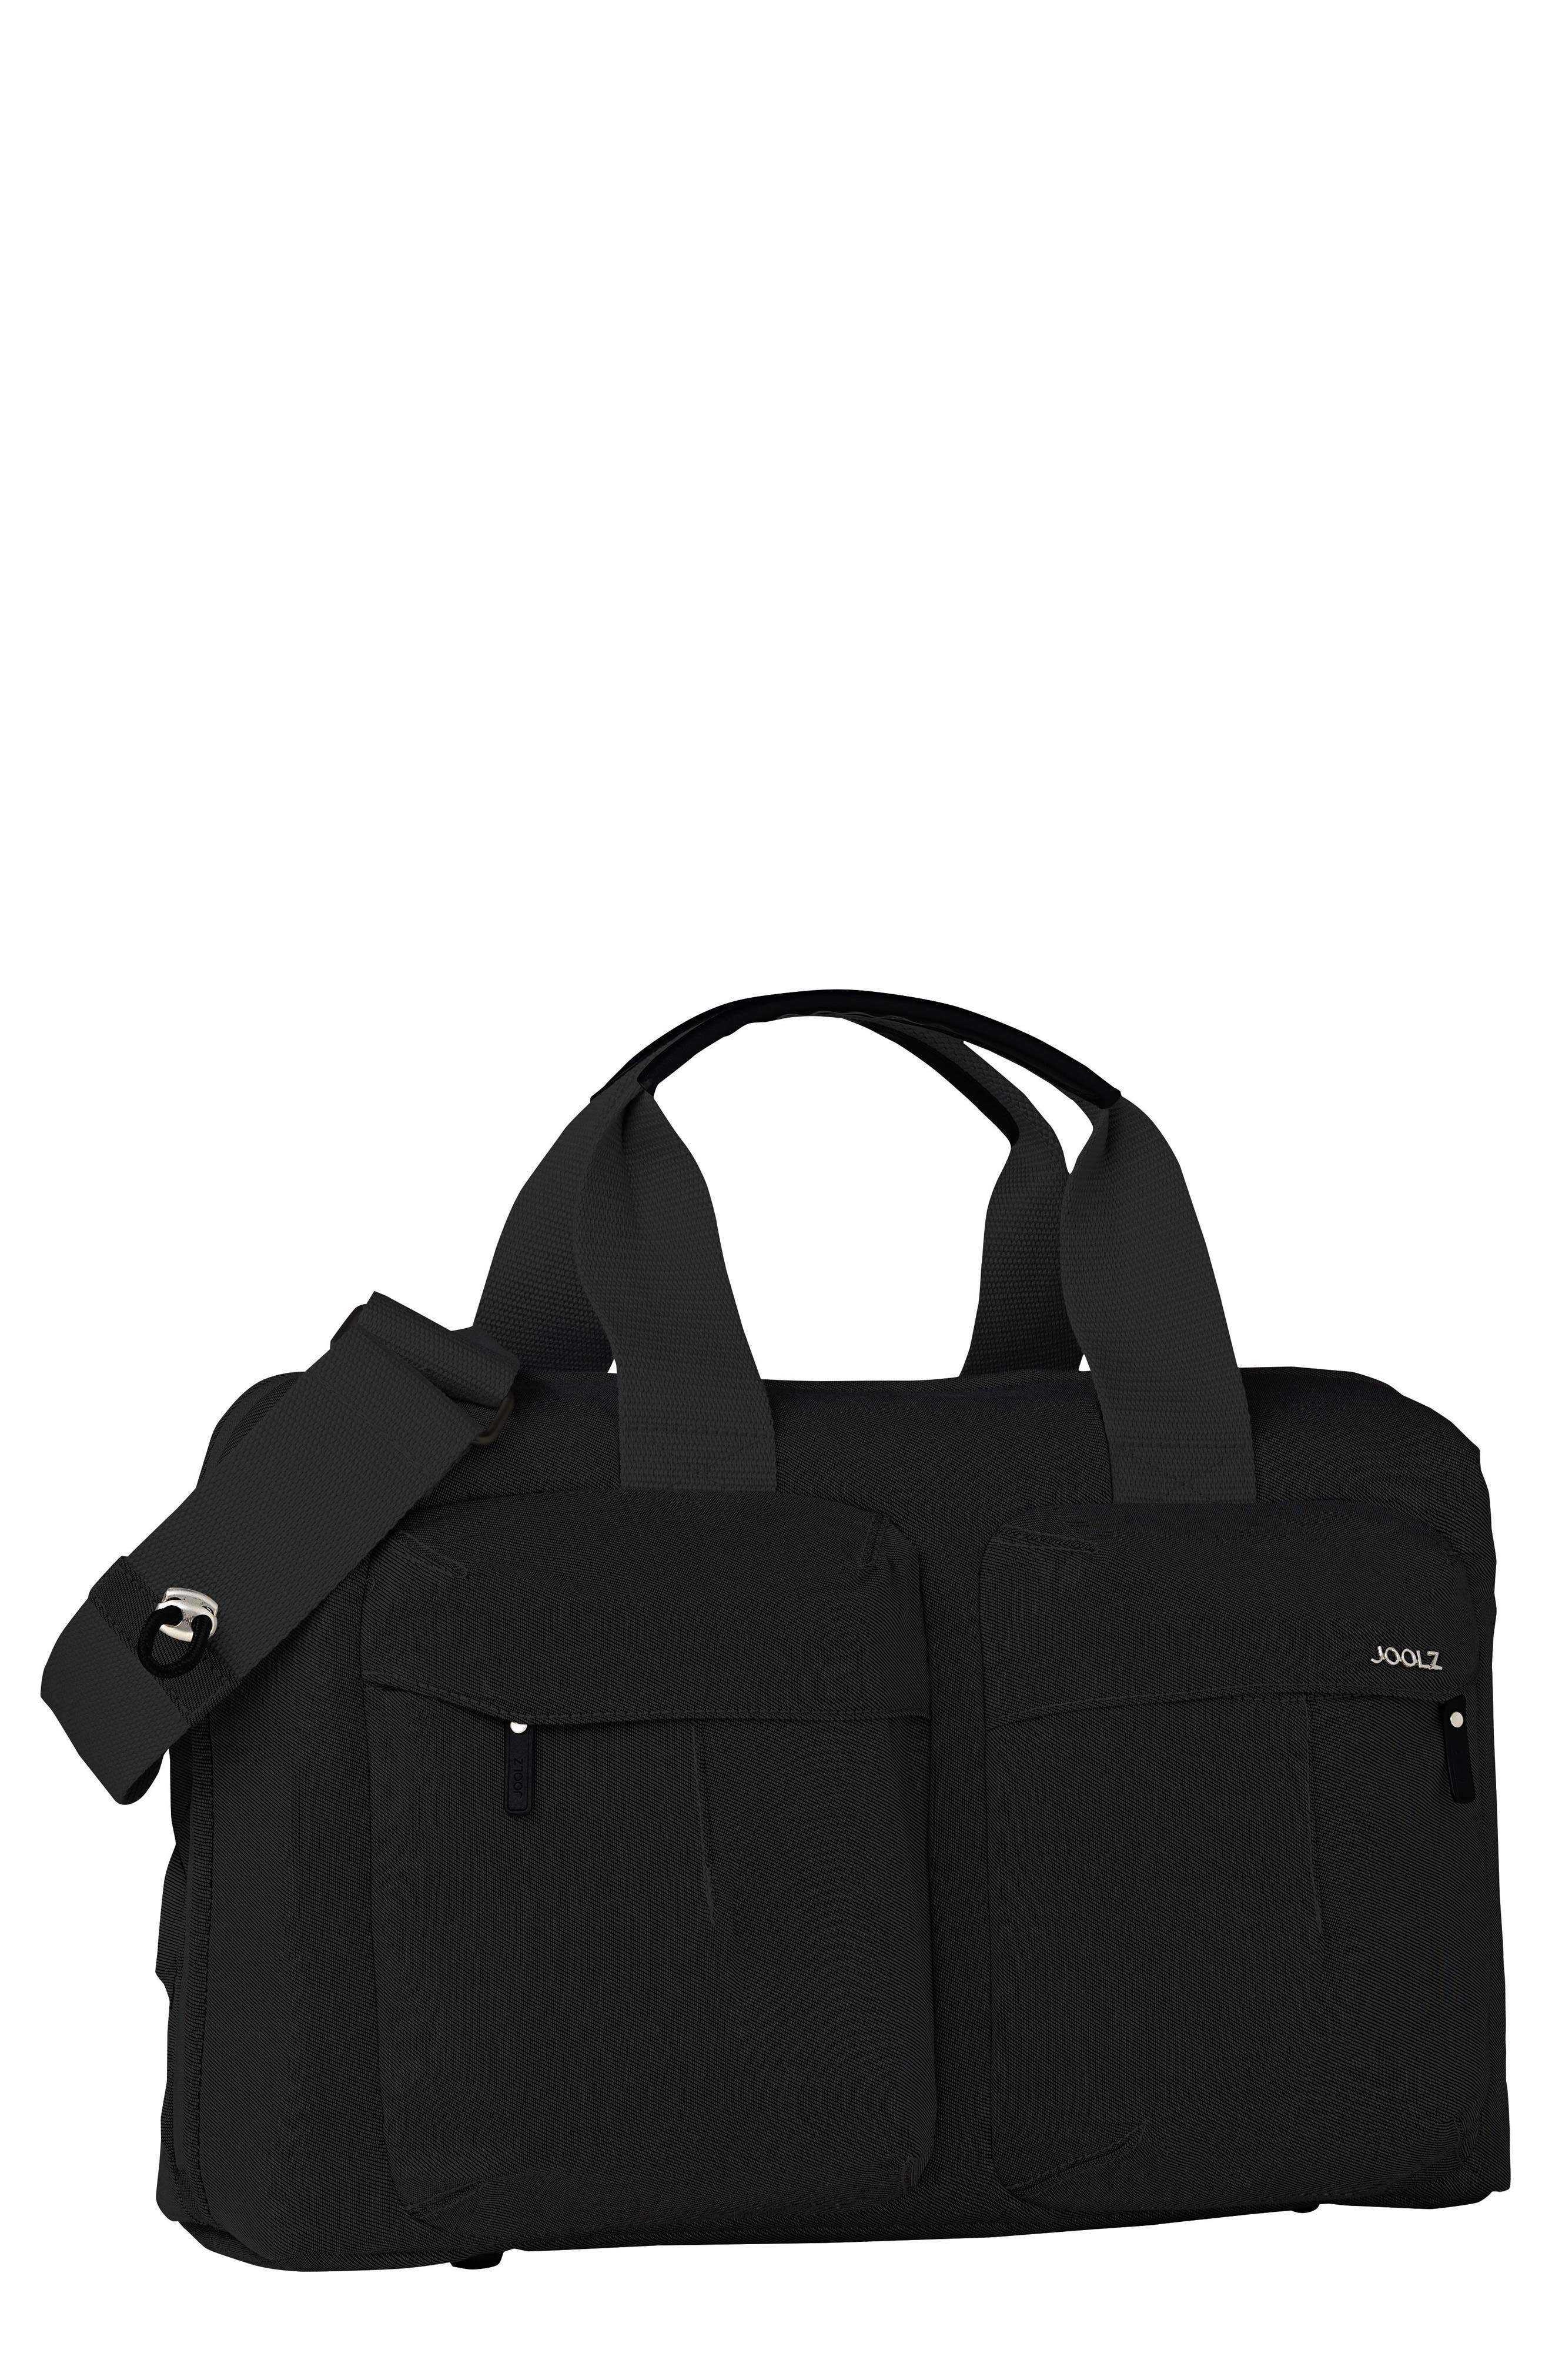 Studio Diaper Bag,                             Main thumbnail 1, color,                             Noir